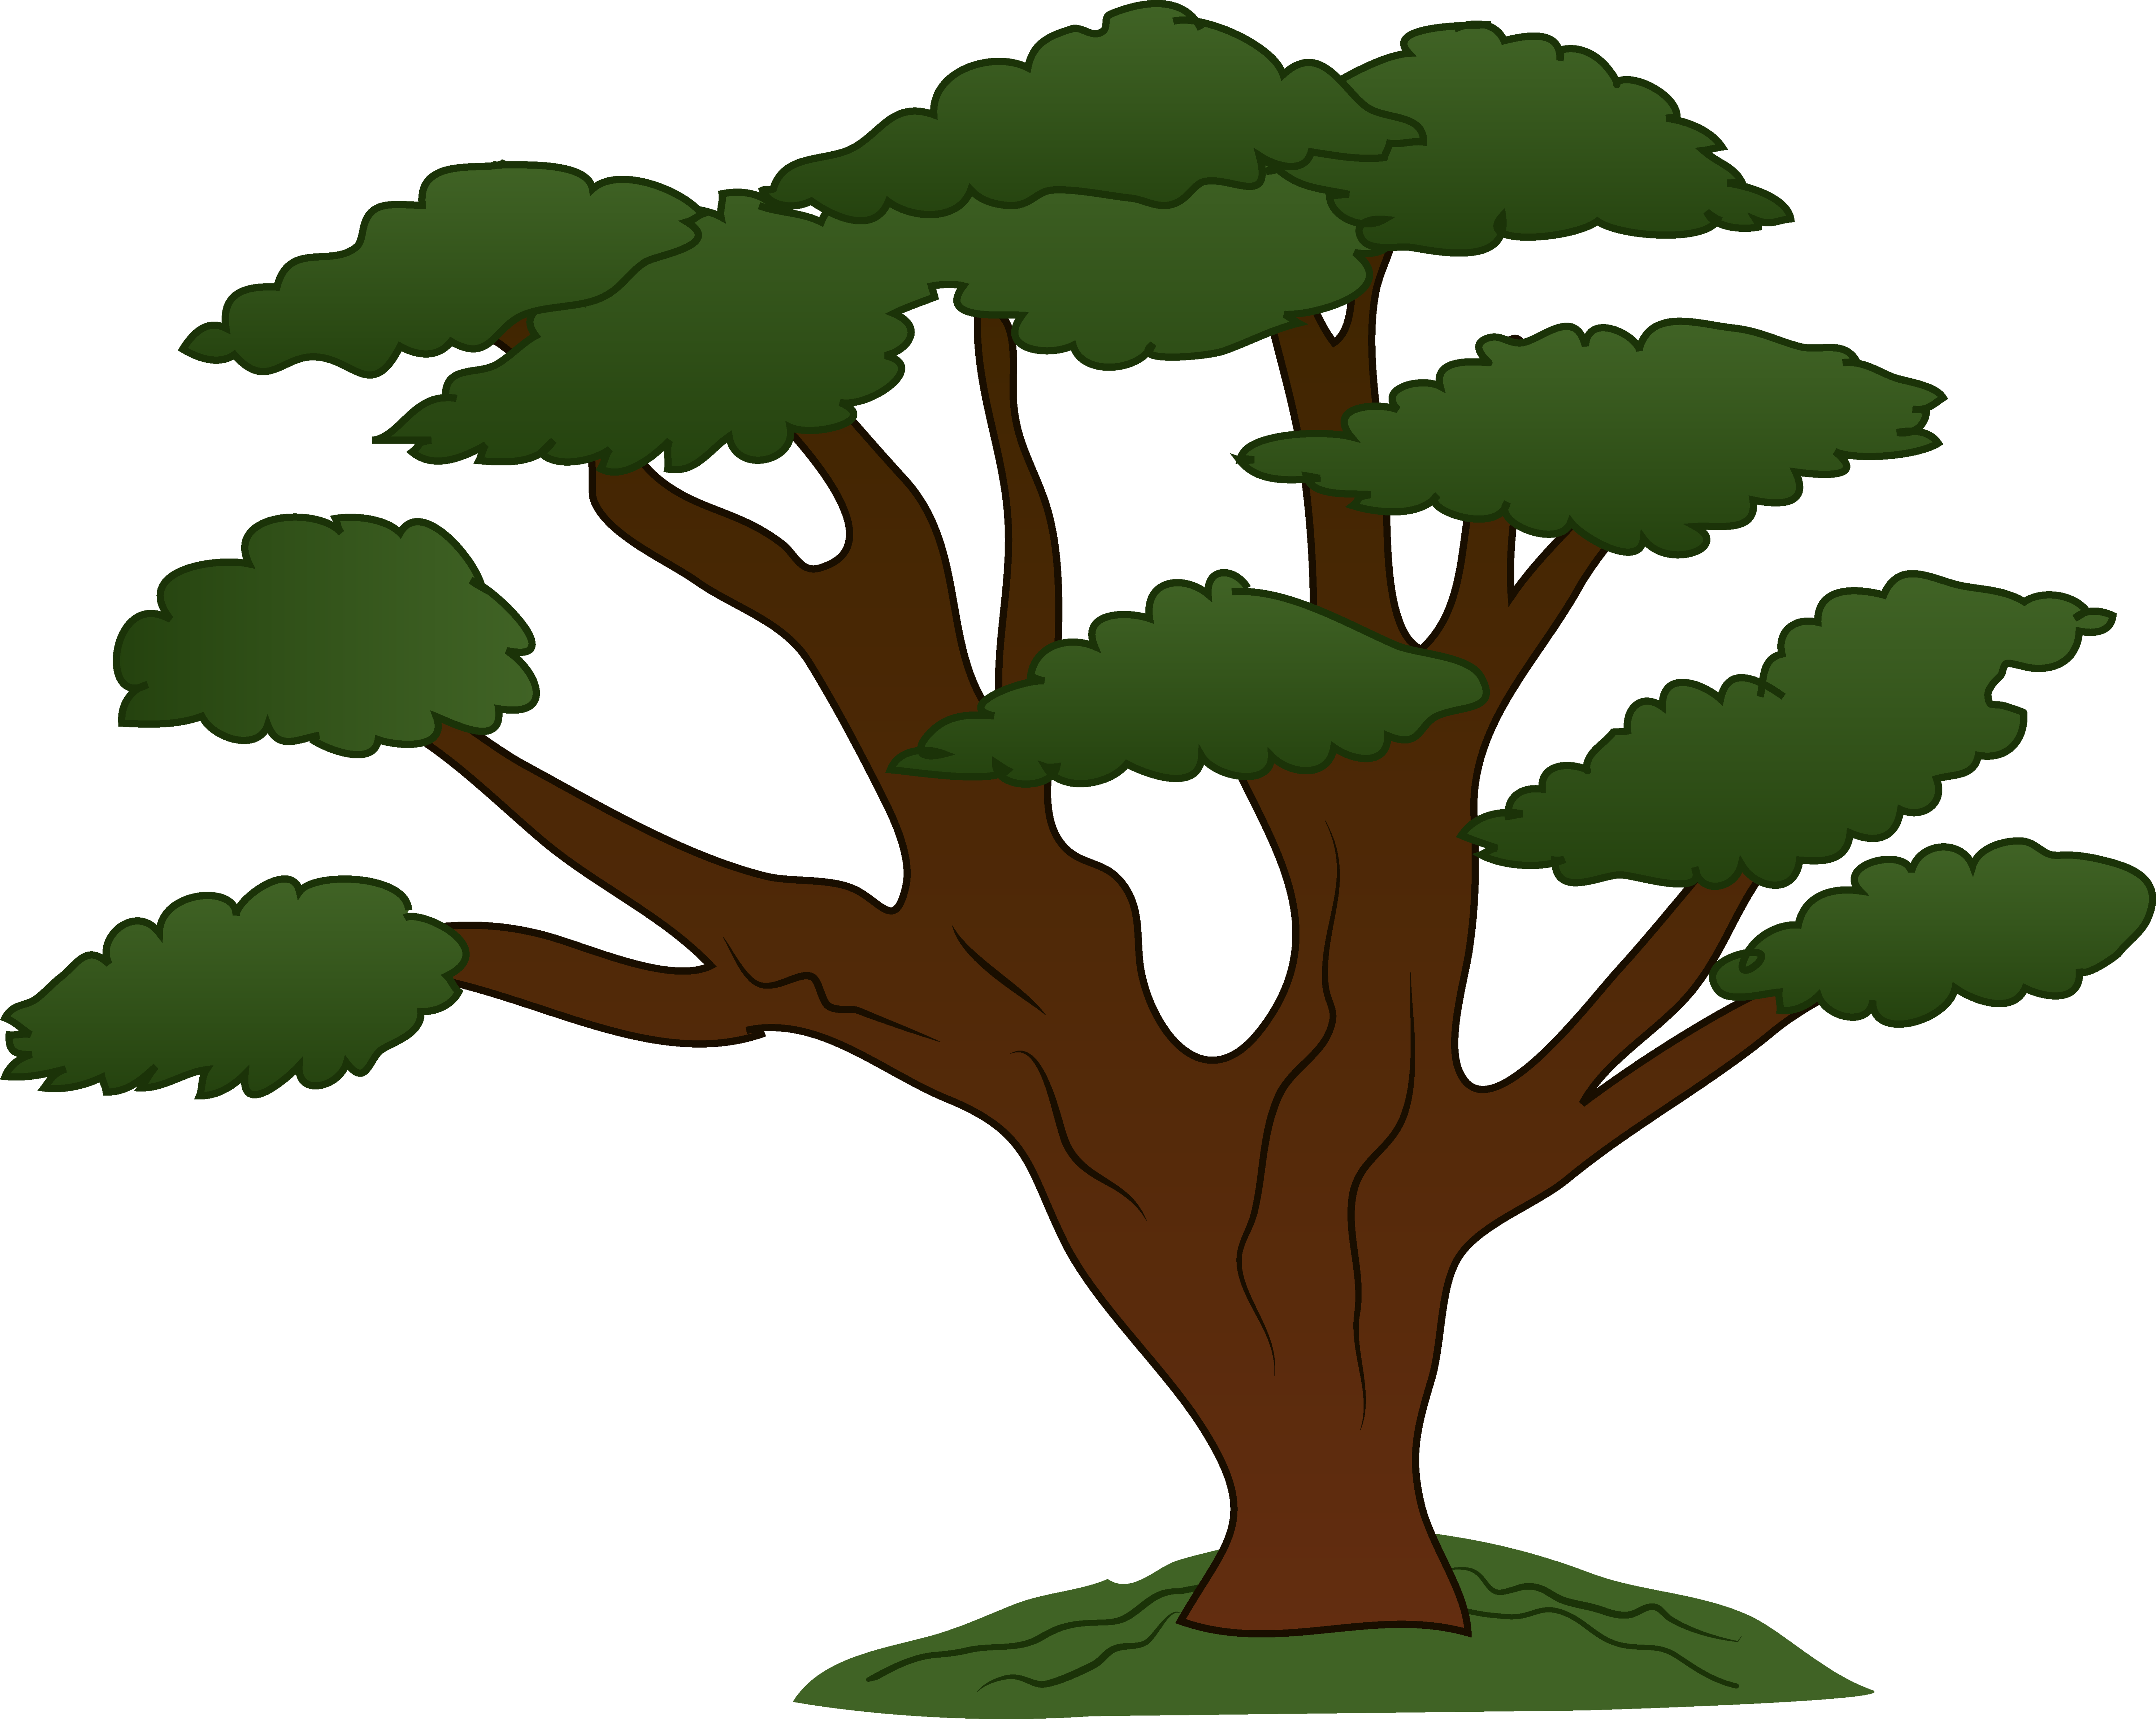 Oak tree forest clipart backgrounds.